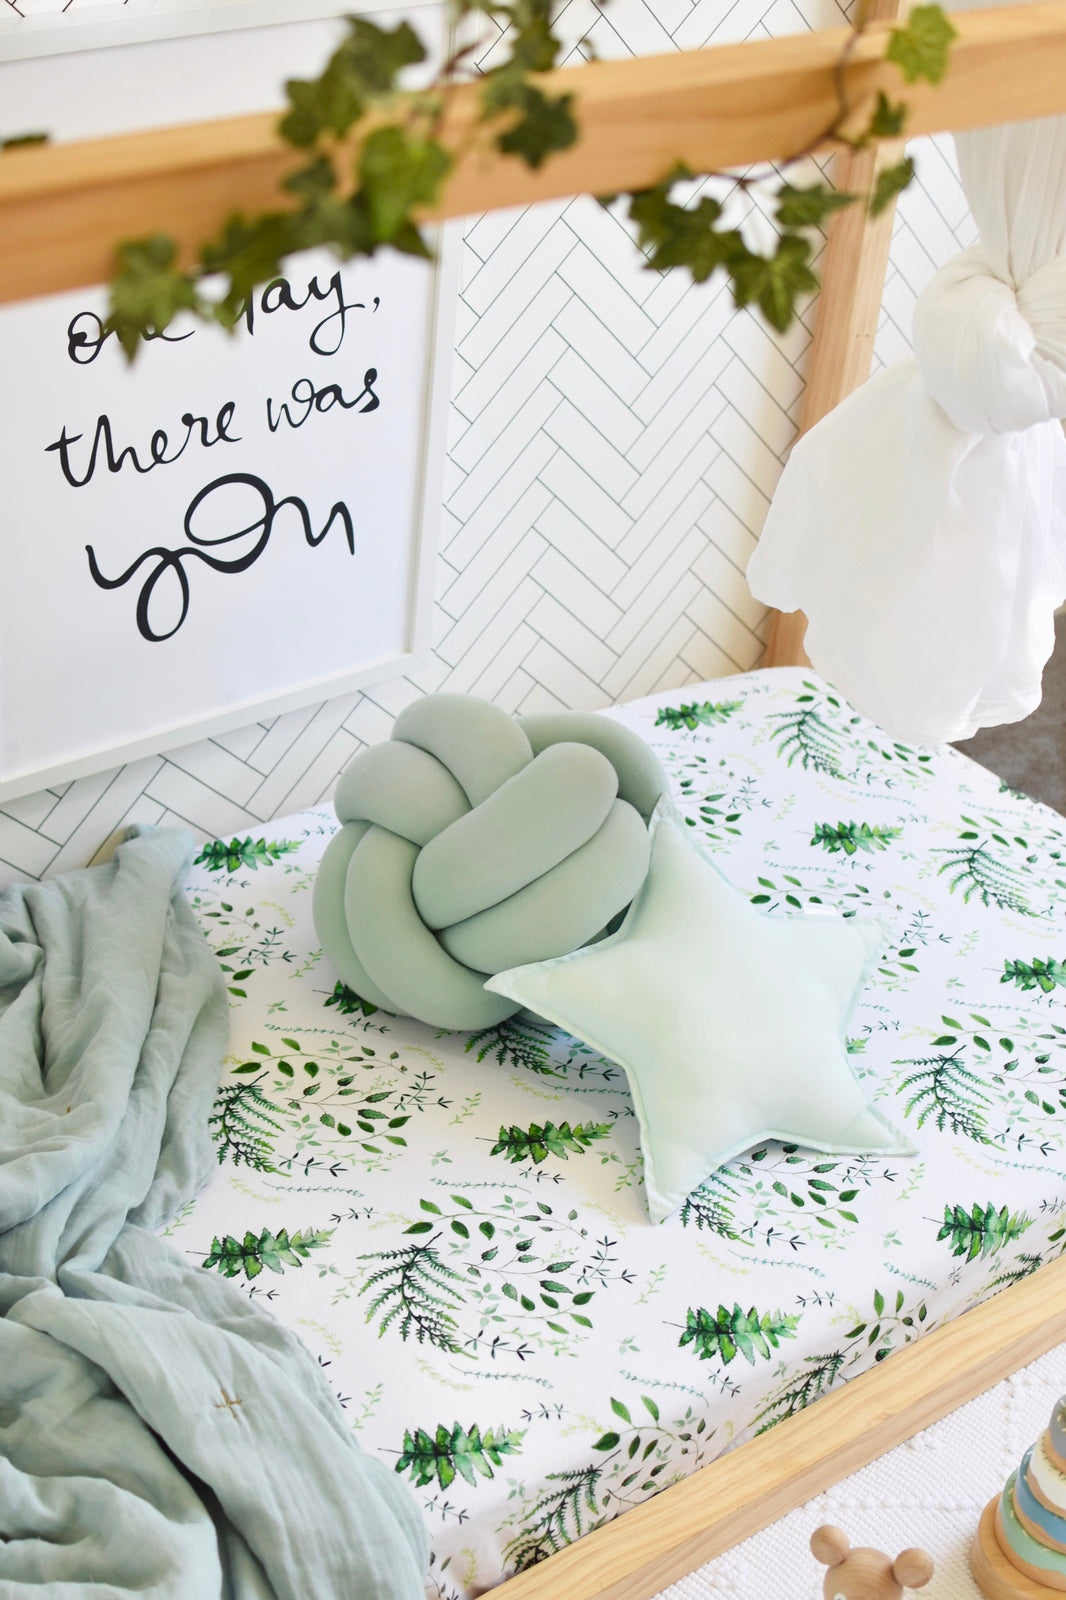 Snuggle Fitted Cot Sheet - Enchanted - Angus & Dudley Collections